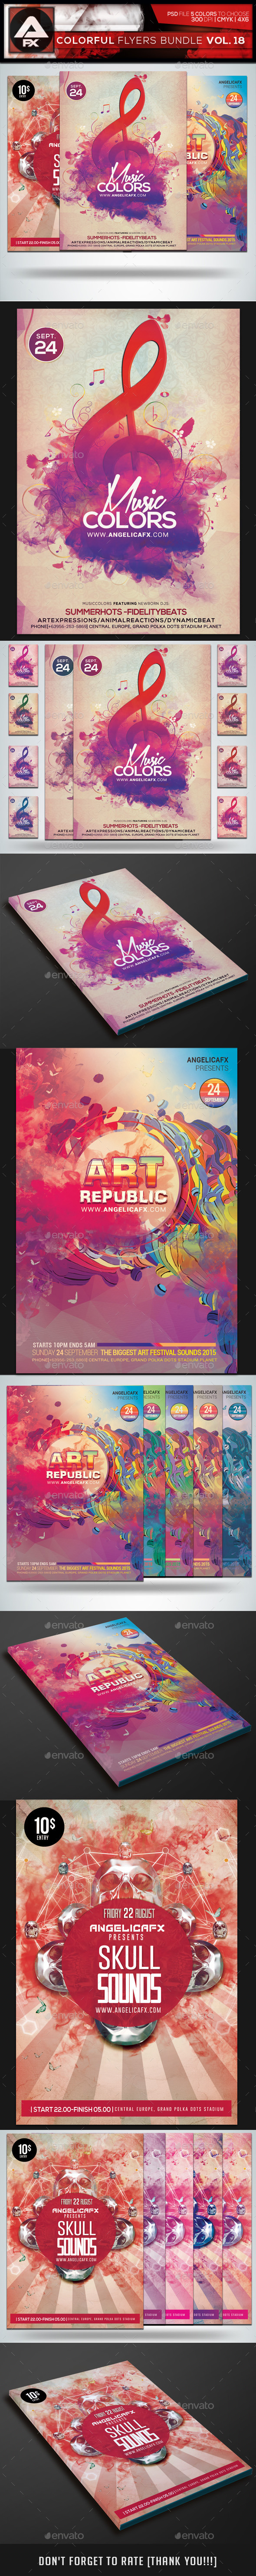 GraphicRiver Colorful Flyers Bundle Vol.18 11877914